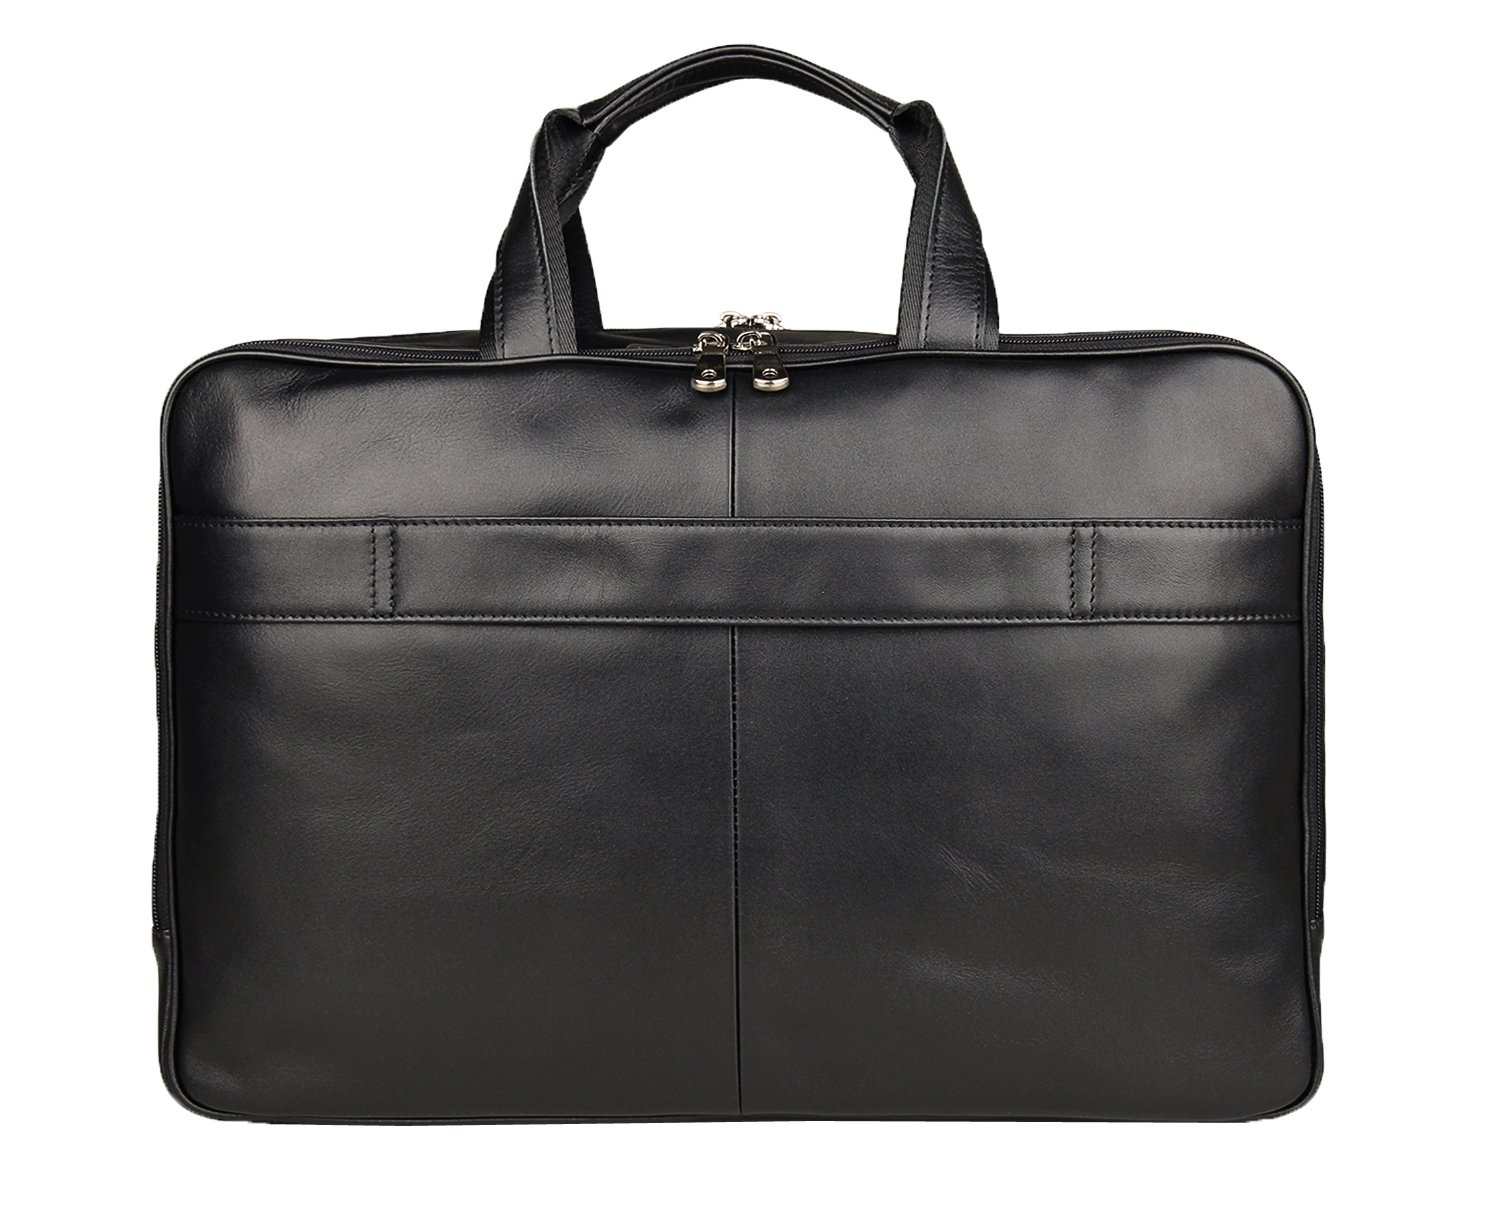 Texbo Men's Genuine Leather Business Trip Briefcase Large Bag Fit 17'' Laptop by Texbo (Image #4)